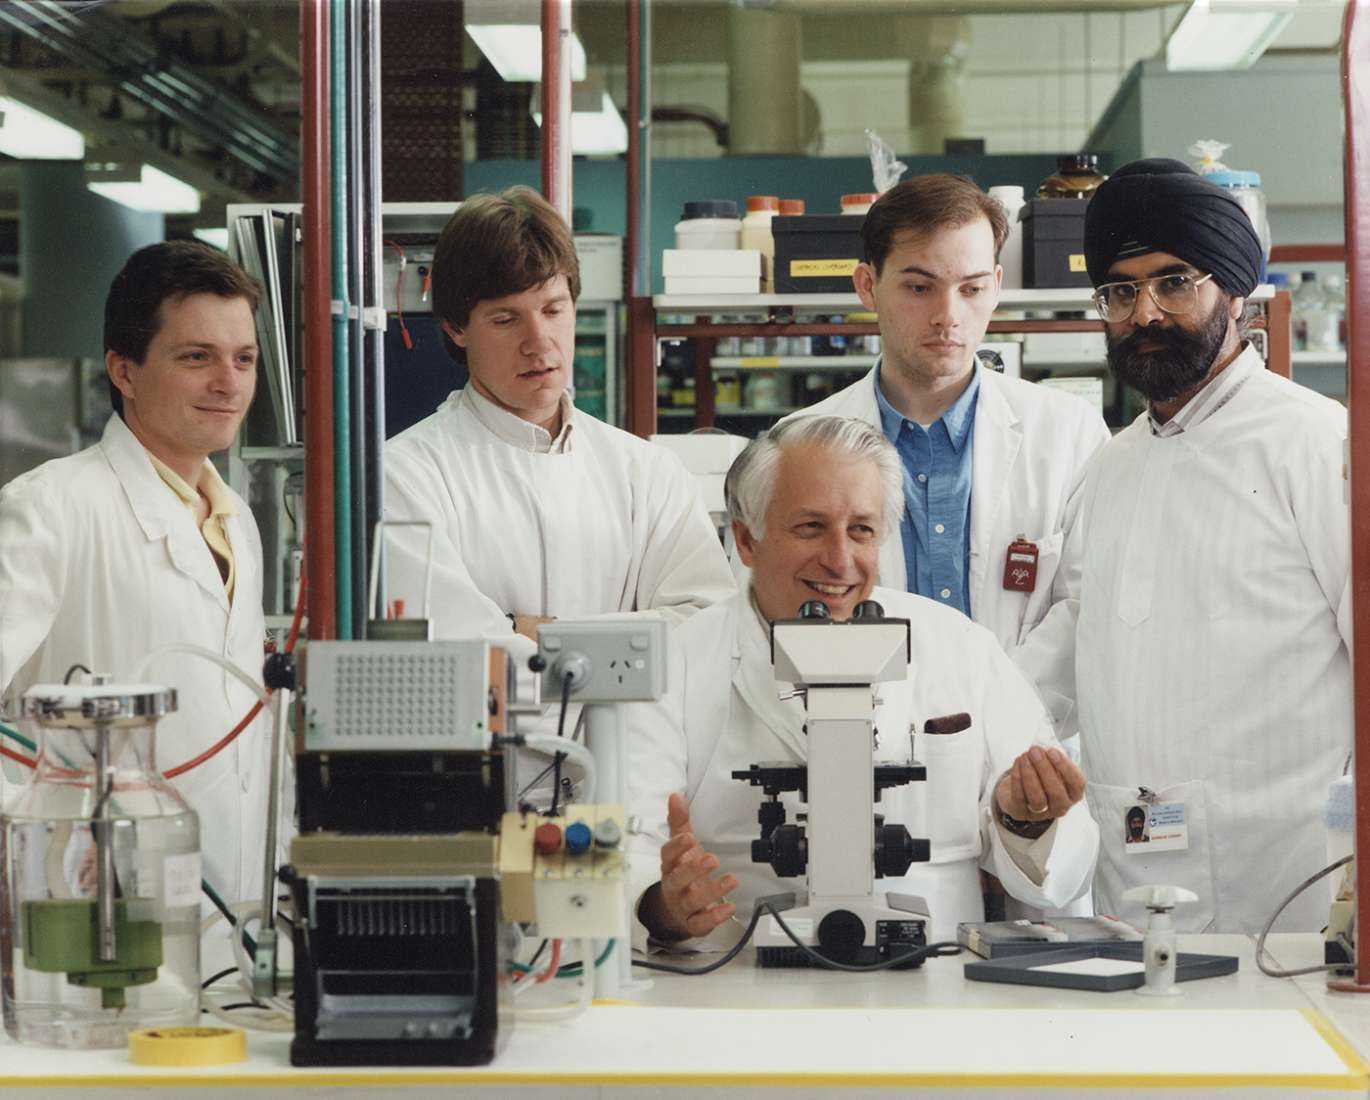 Researchers in the lab, with Gus Nossal seated at microscope.